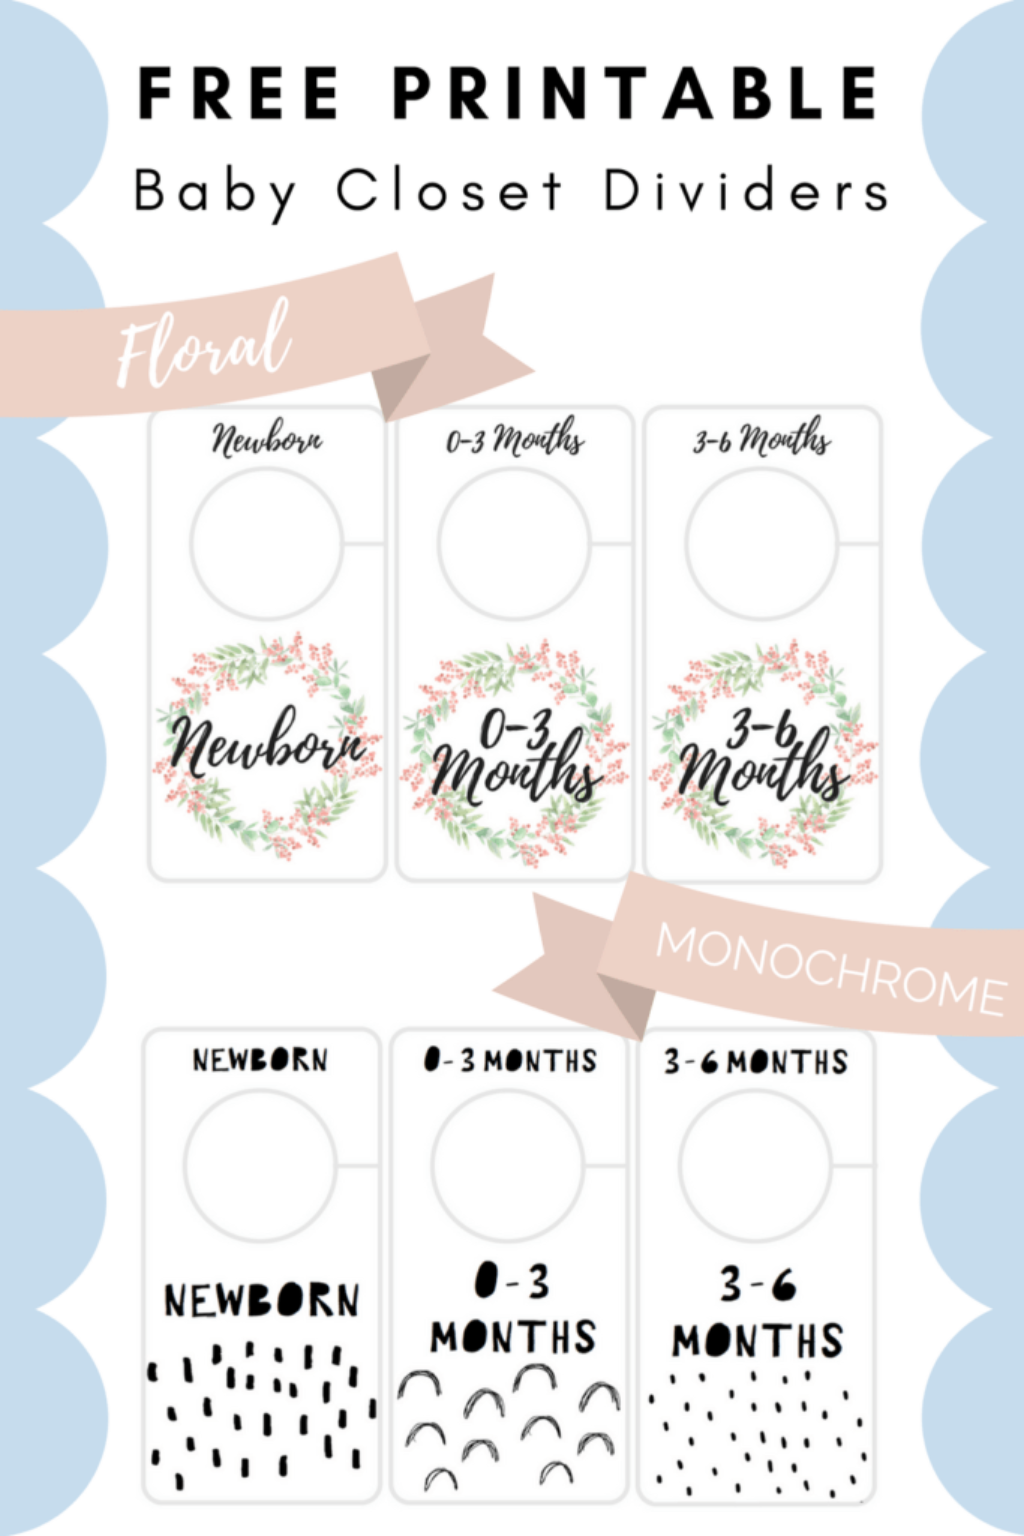 photograph regarding Baby Printable called Cost-free Printable Little one Closet Dividers Preemie in the direction of 24 Weeks - 2